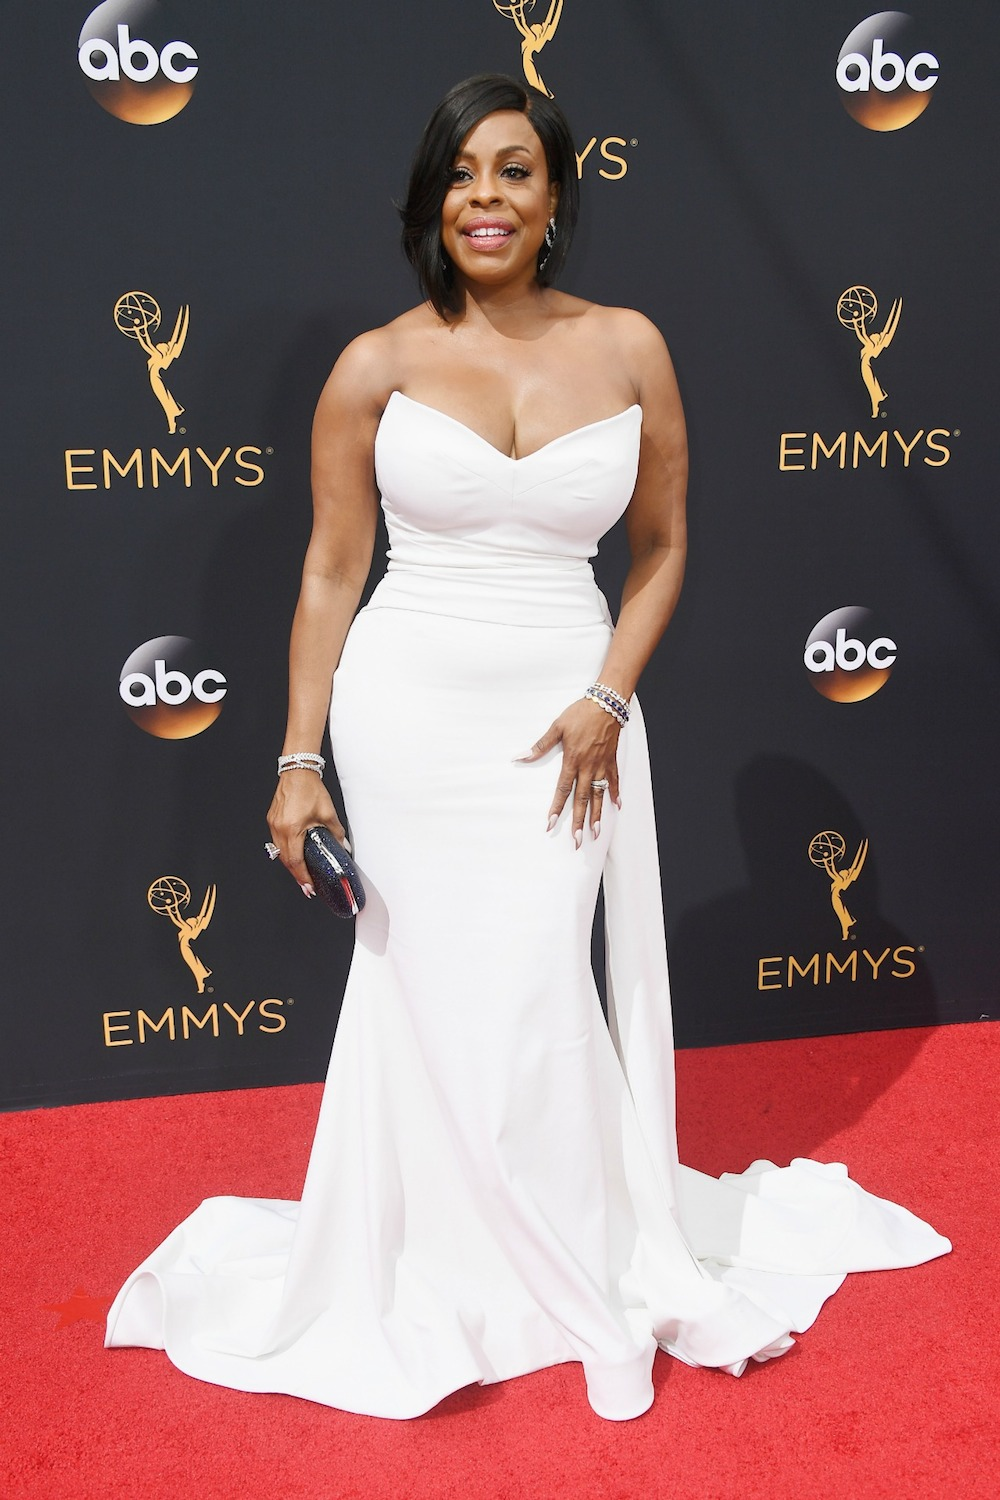 Niecy Nash in Christian Siriano at the 2016 Emmy Awards. Siriano also dressed Angela Bassett, Neve Campbell, Maura Tierney, Anna Chlumsky, Laurie Metcalf, Kathy Bates, Lauren Adams, and Leslie Jones. Image courtesy of Getty.